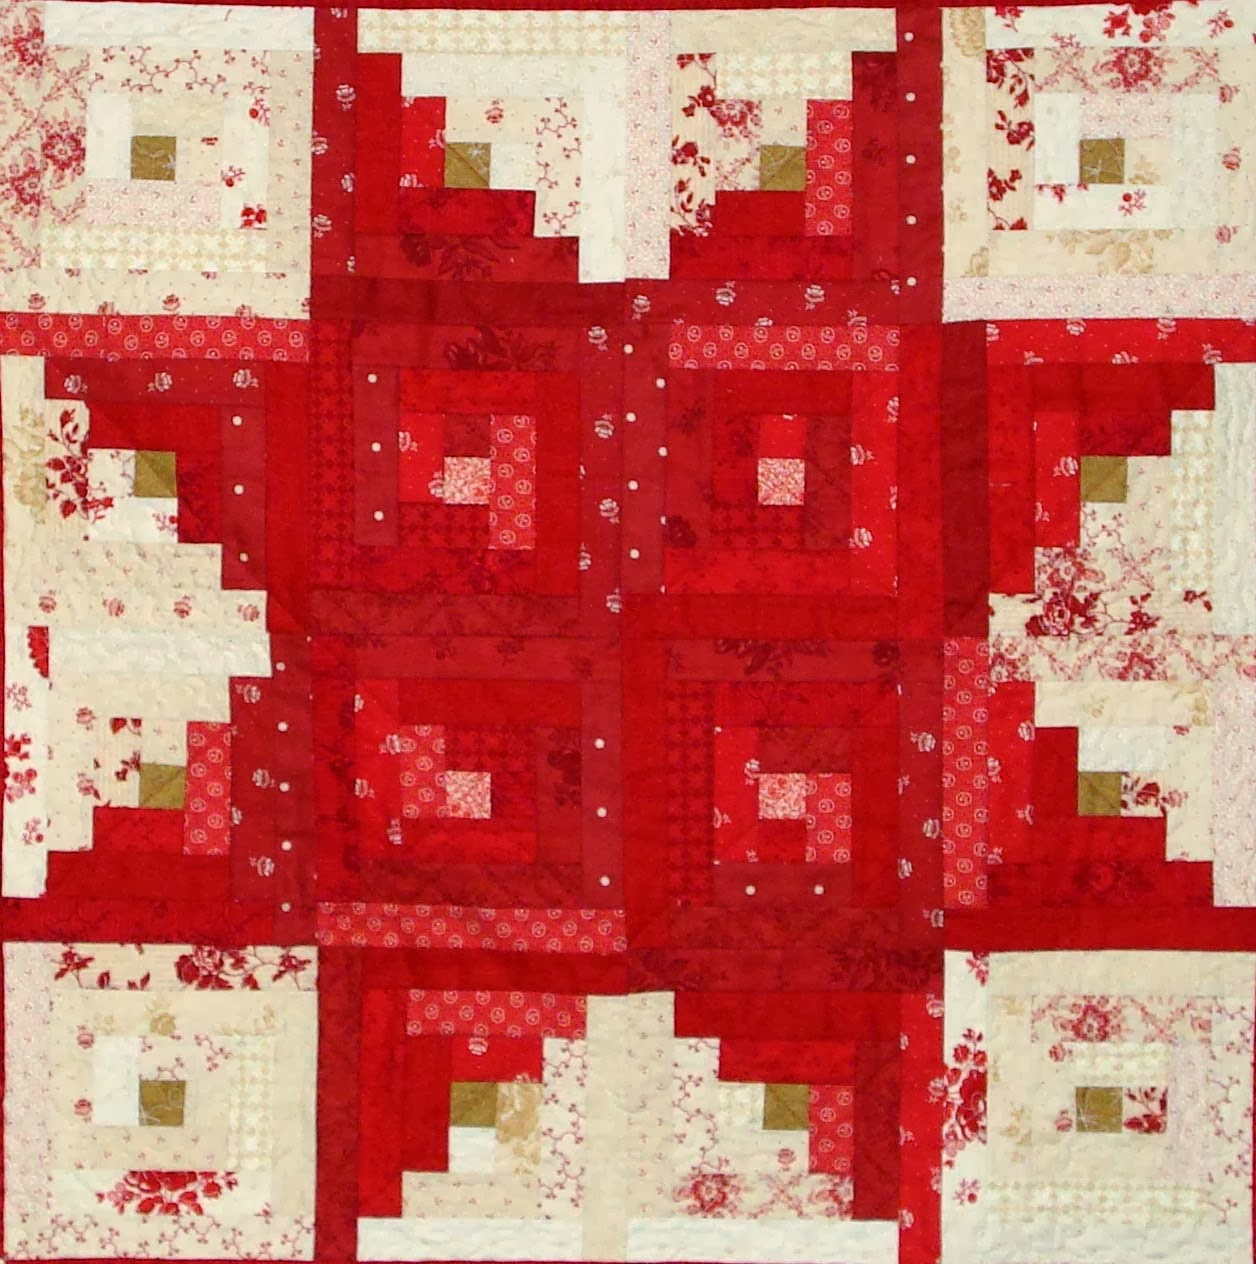 Quilt Inspiration: Free pattern day: Christmas quilts ! (part 3)